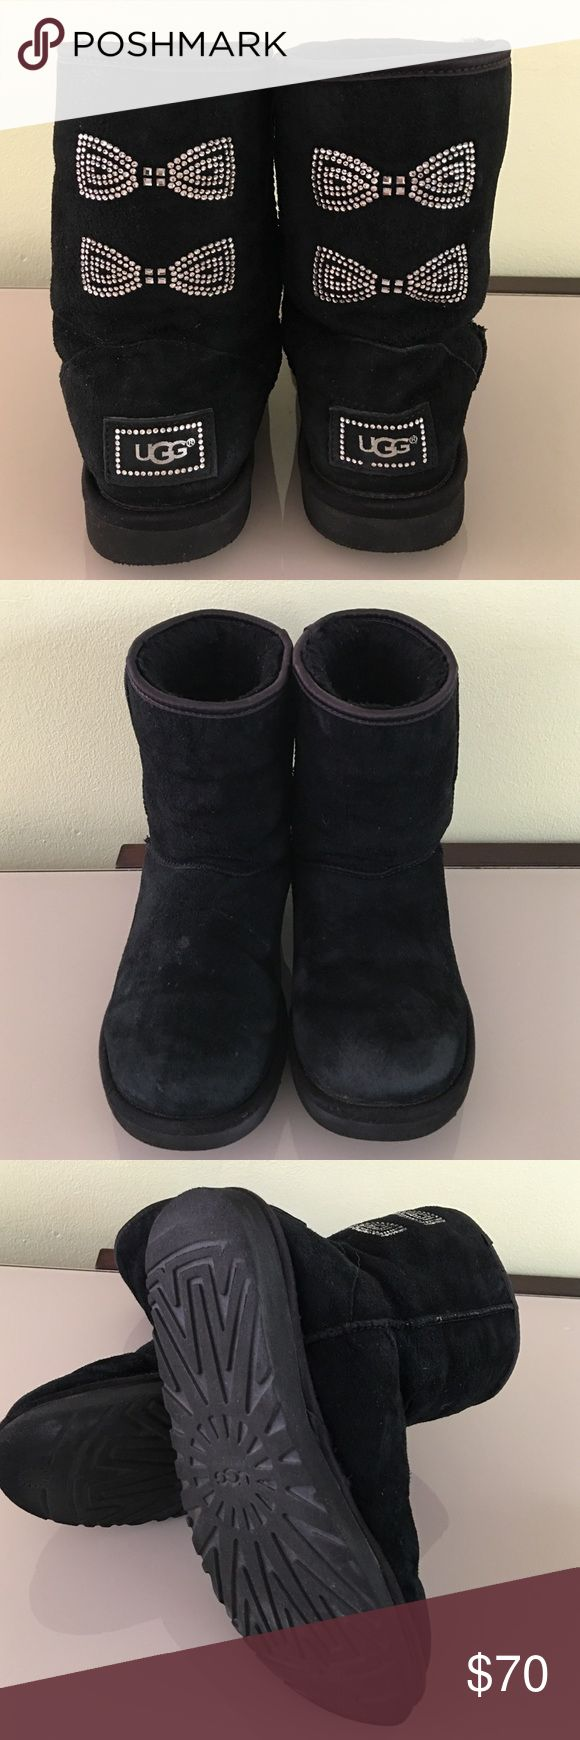 UGG SWAROVSKI CRYSTAL BOWS BOOTS BLACK SIZE 7 UGG Australia Swarovski Crystal  Bows Boots Black Size7. In great used condition with minor water spots. 🚫No trades Thank you😊 UGG Shoes Winter & Rain Boots